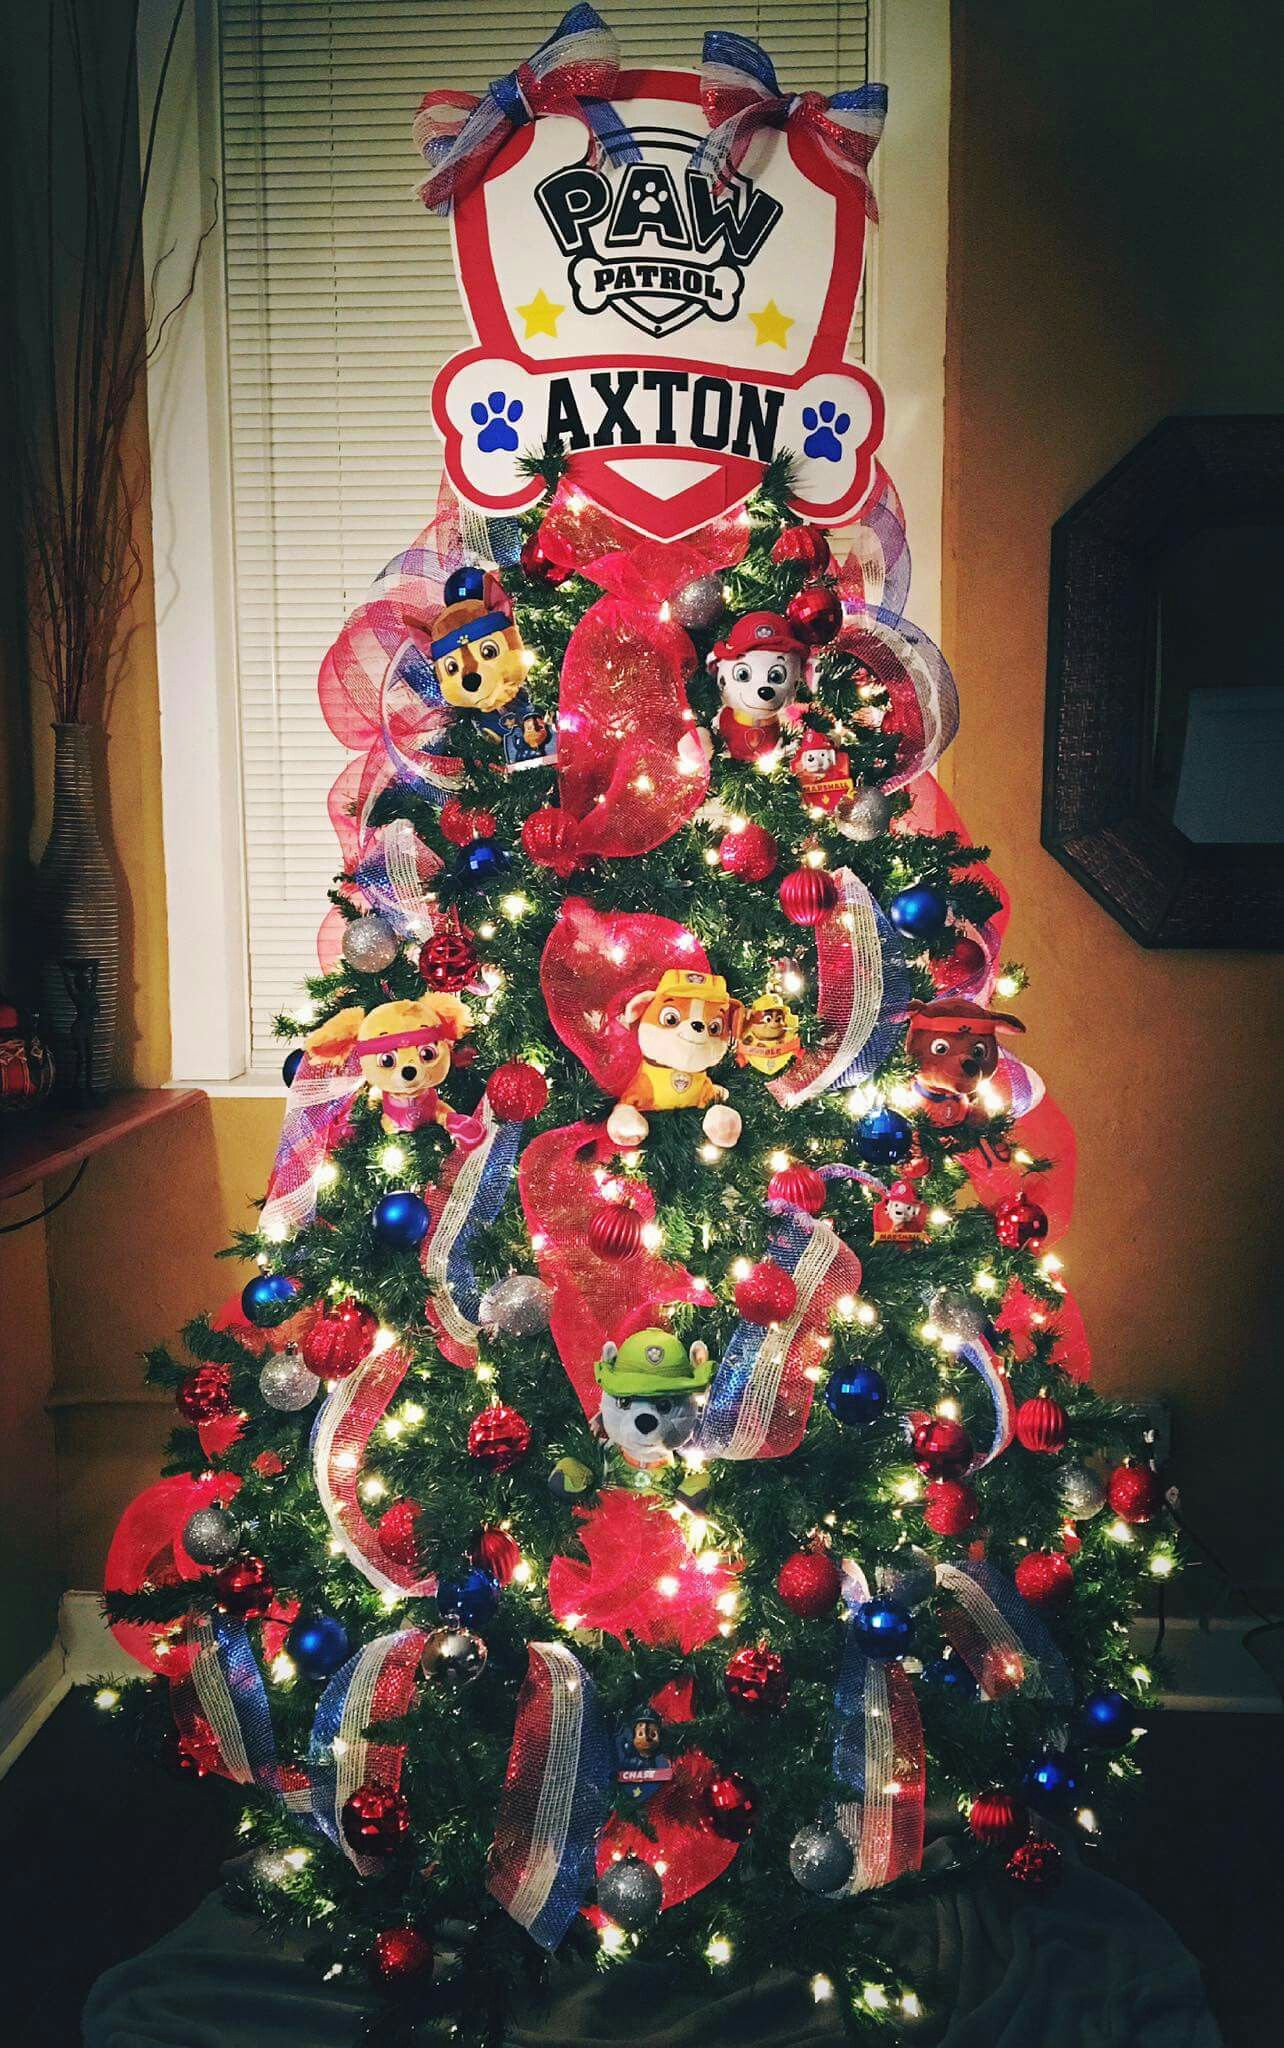 paw patrol christmas tree - Paw Patrol Christmas Decorations